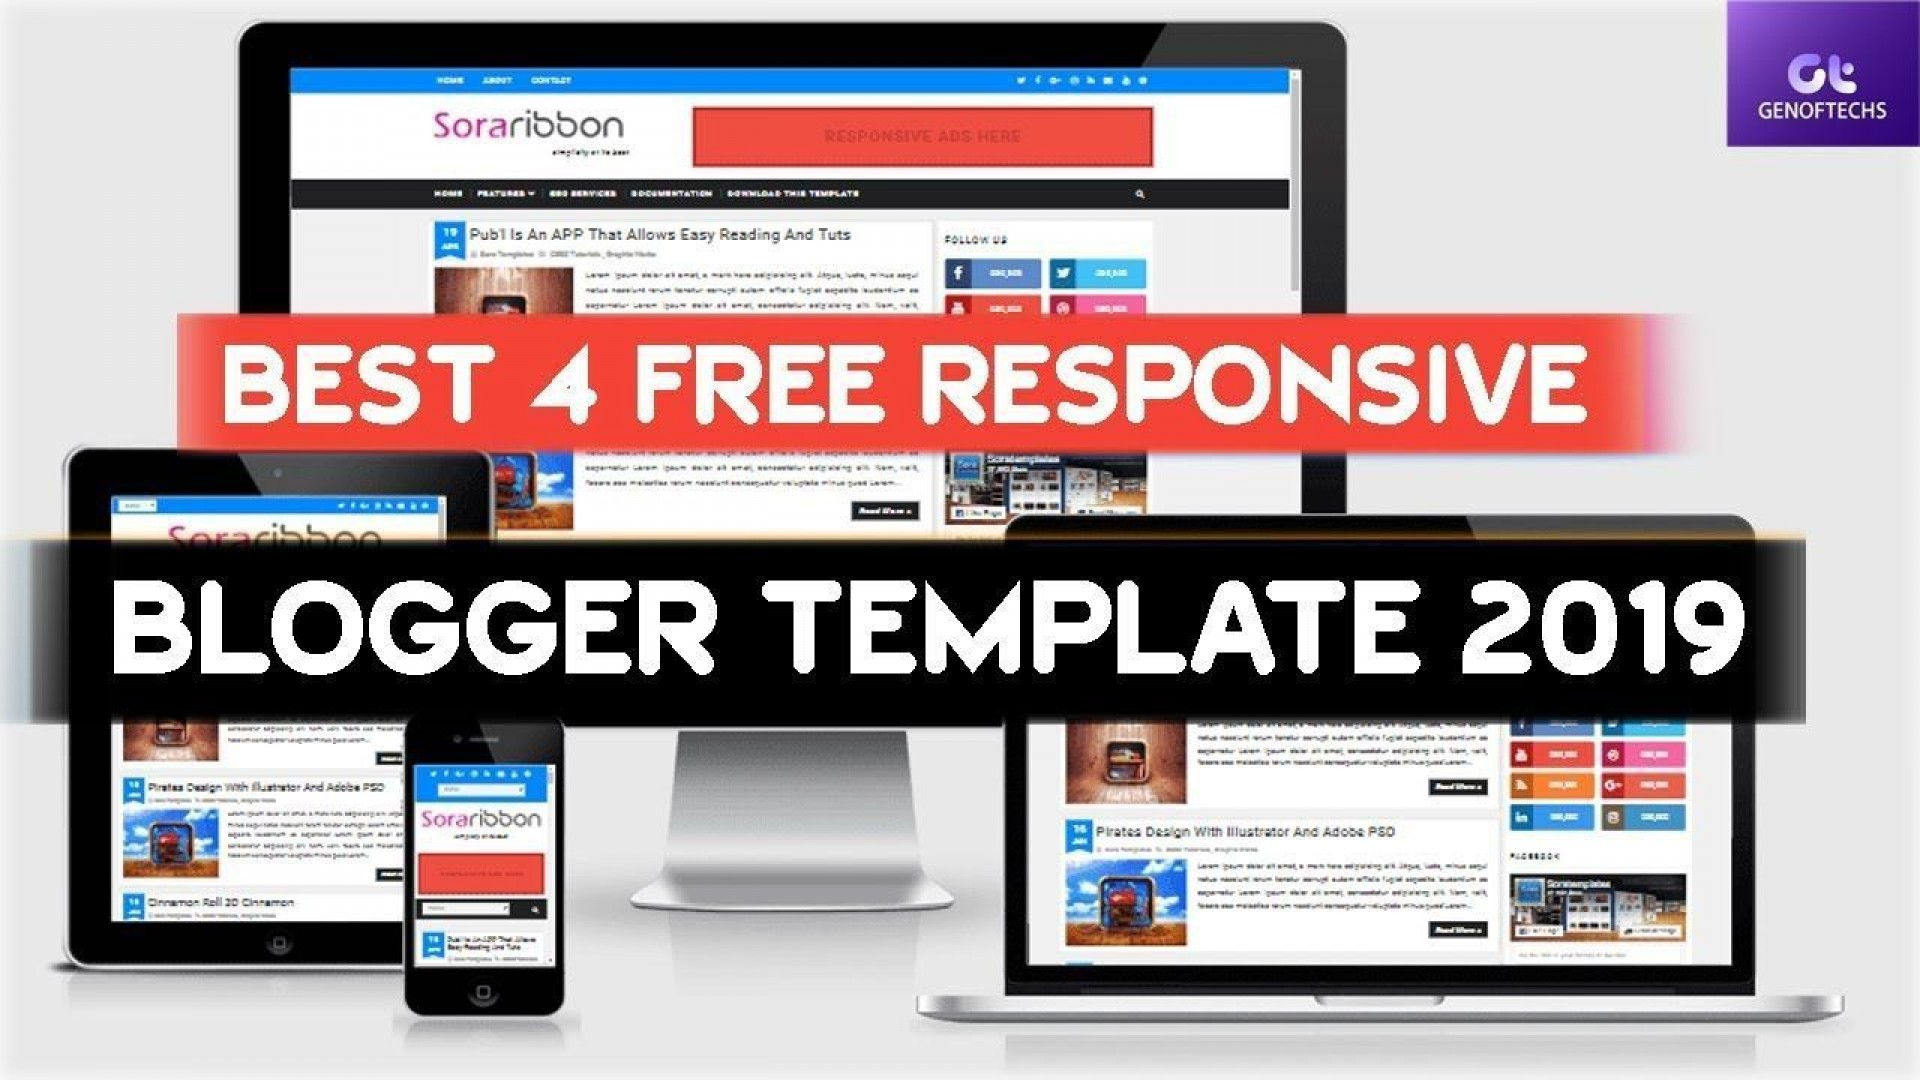 004 Striking Best Free Responsive Blogger Template Concept  2019 Mobile Friendly Top1920